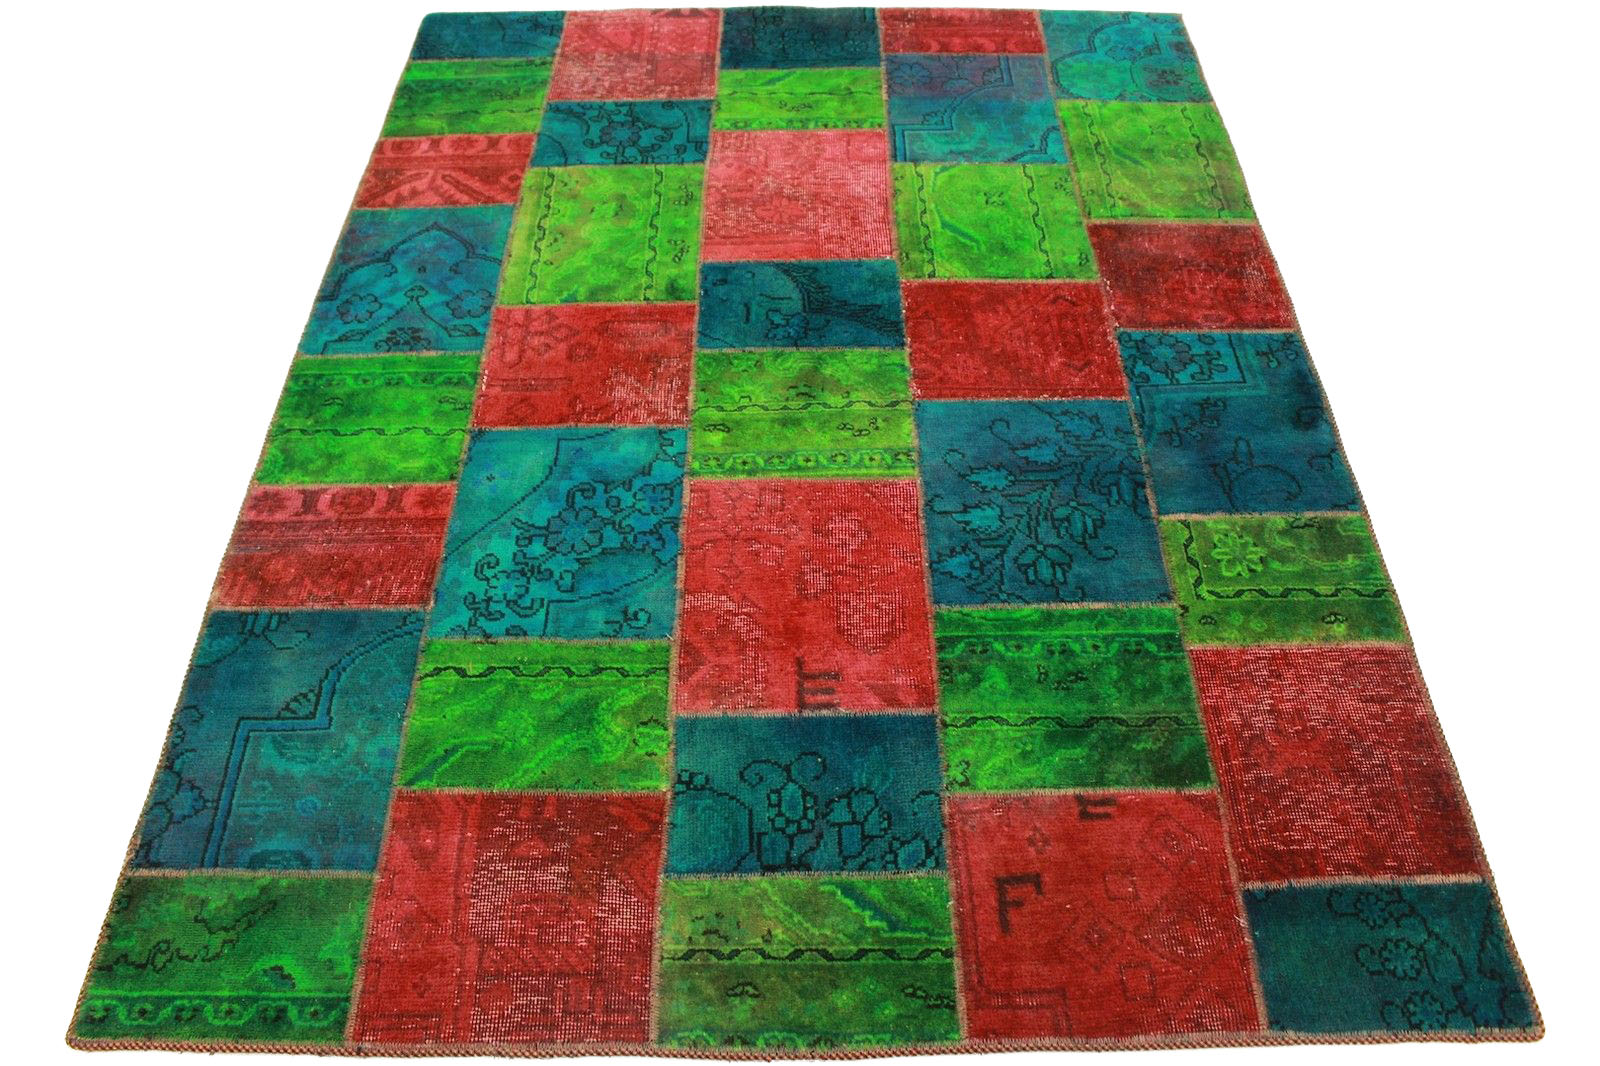 patchwork rug green red turquoise in 200x150cm 1001 2537 buy online at. Black Bedroom Furniture Sets. Home Design Ideas